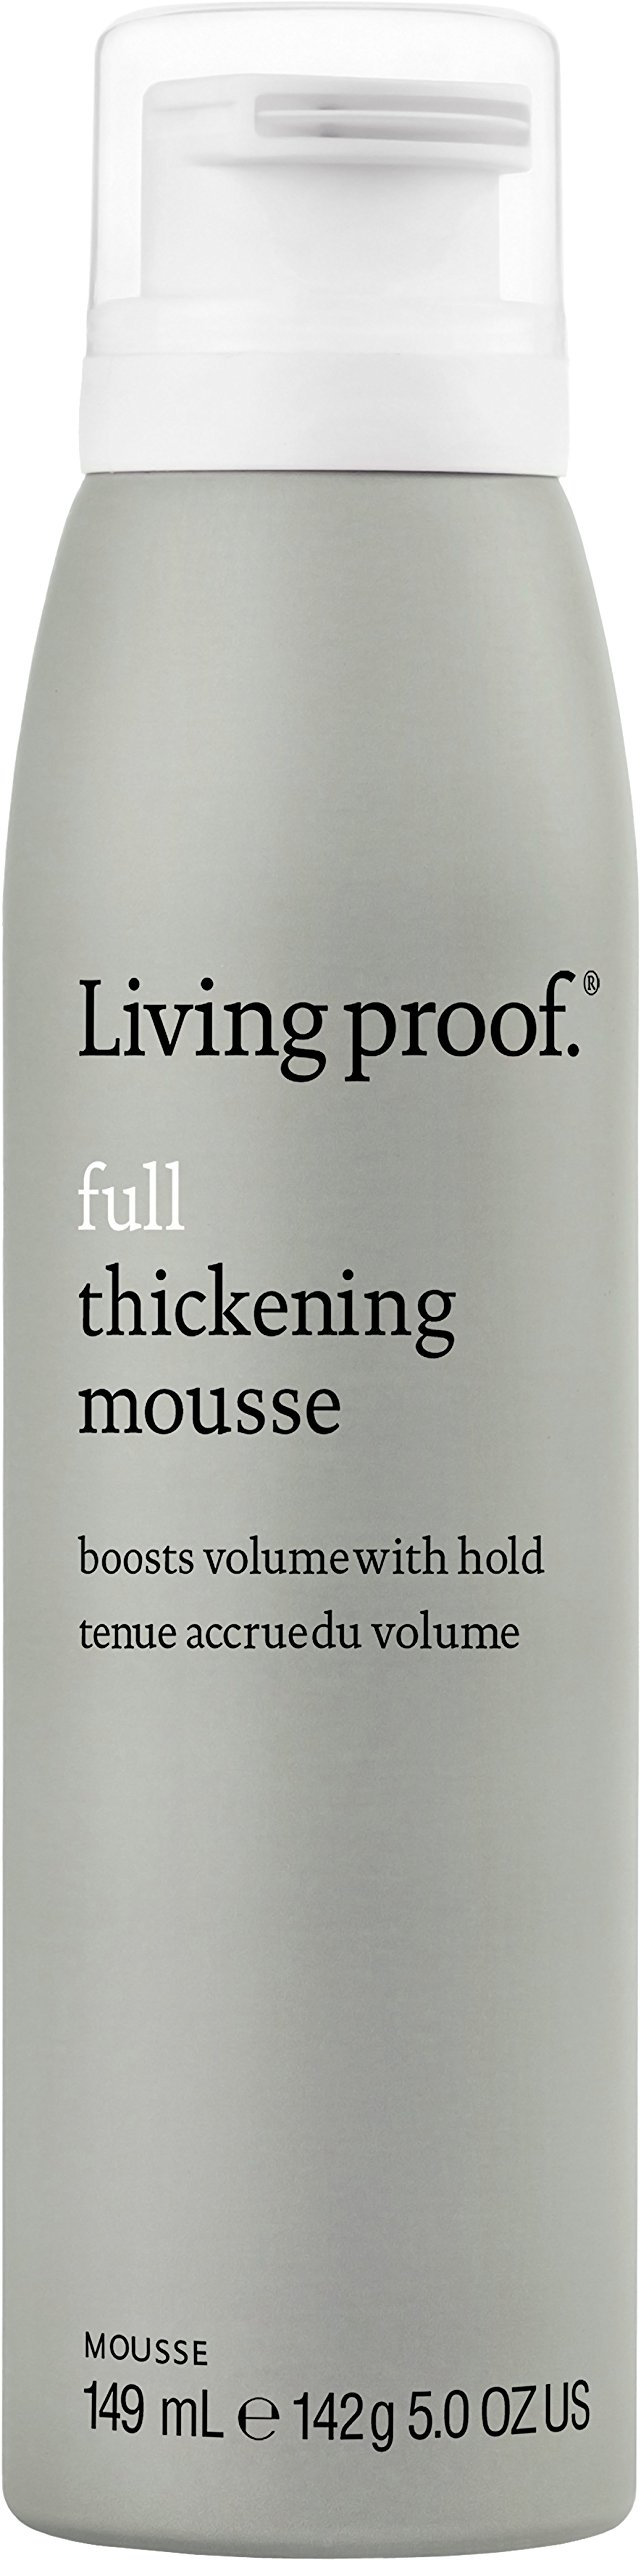 Living Proof Full Thickening Mousse 149ml - Pack of 2 by Living Proof